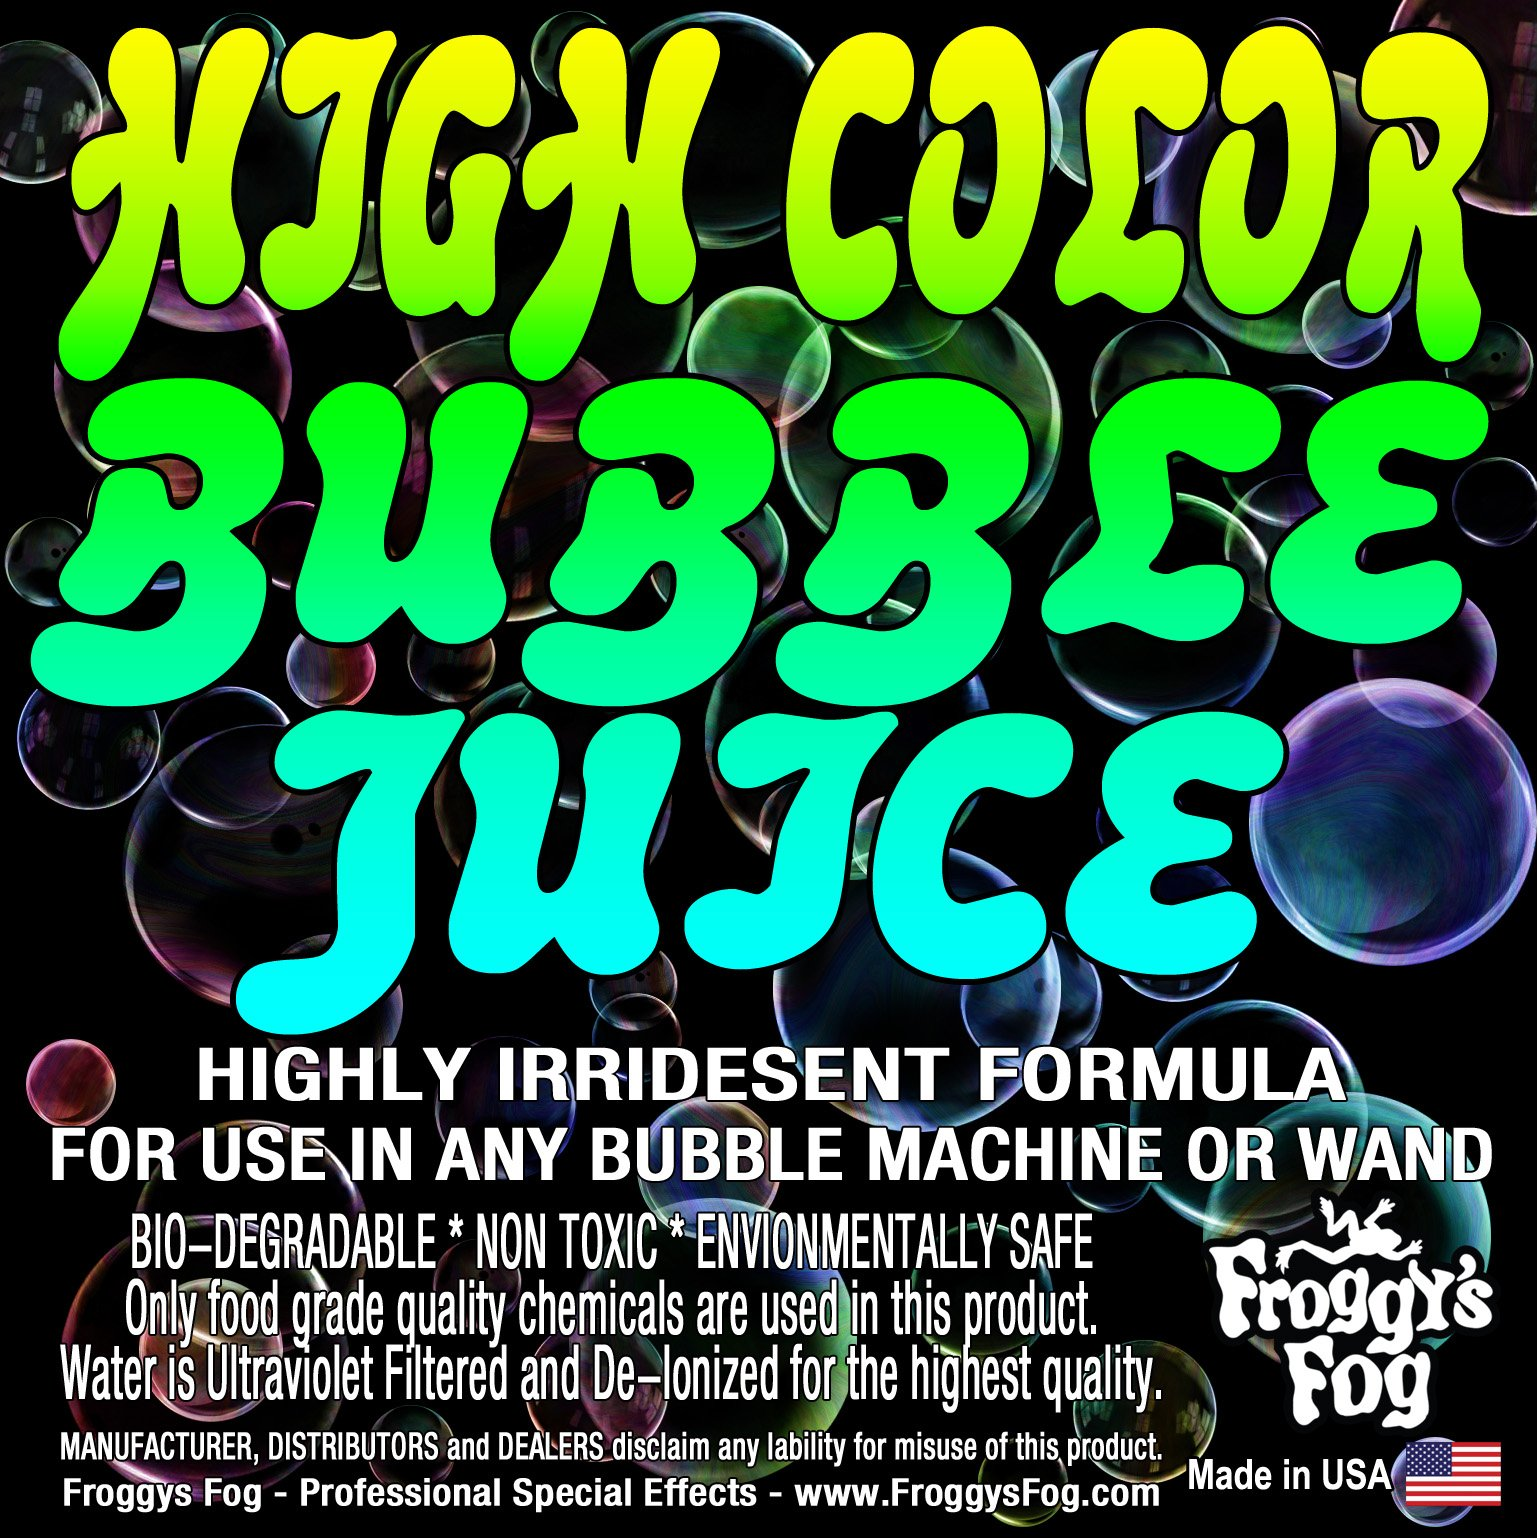 Froggys Fog - High Color Bubble Juice - Strong, Long-Lasting, Iridescent, Brilliant for All Bubble Machines and Bubblers - 4 Gallon Case